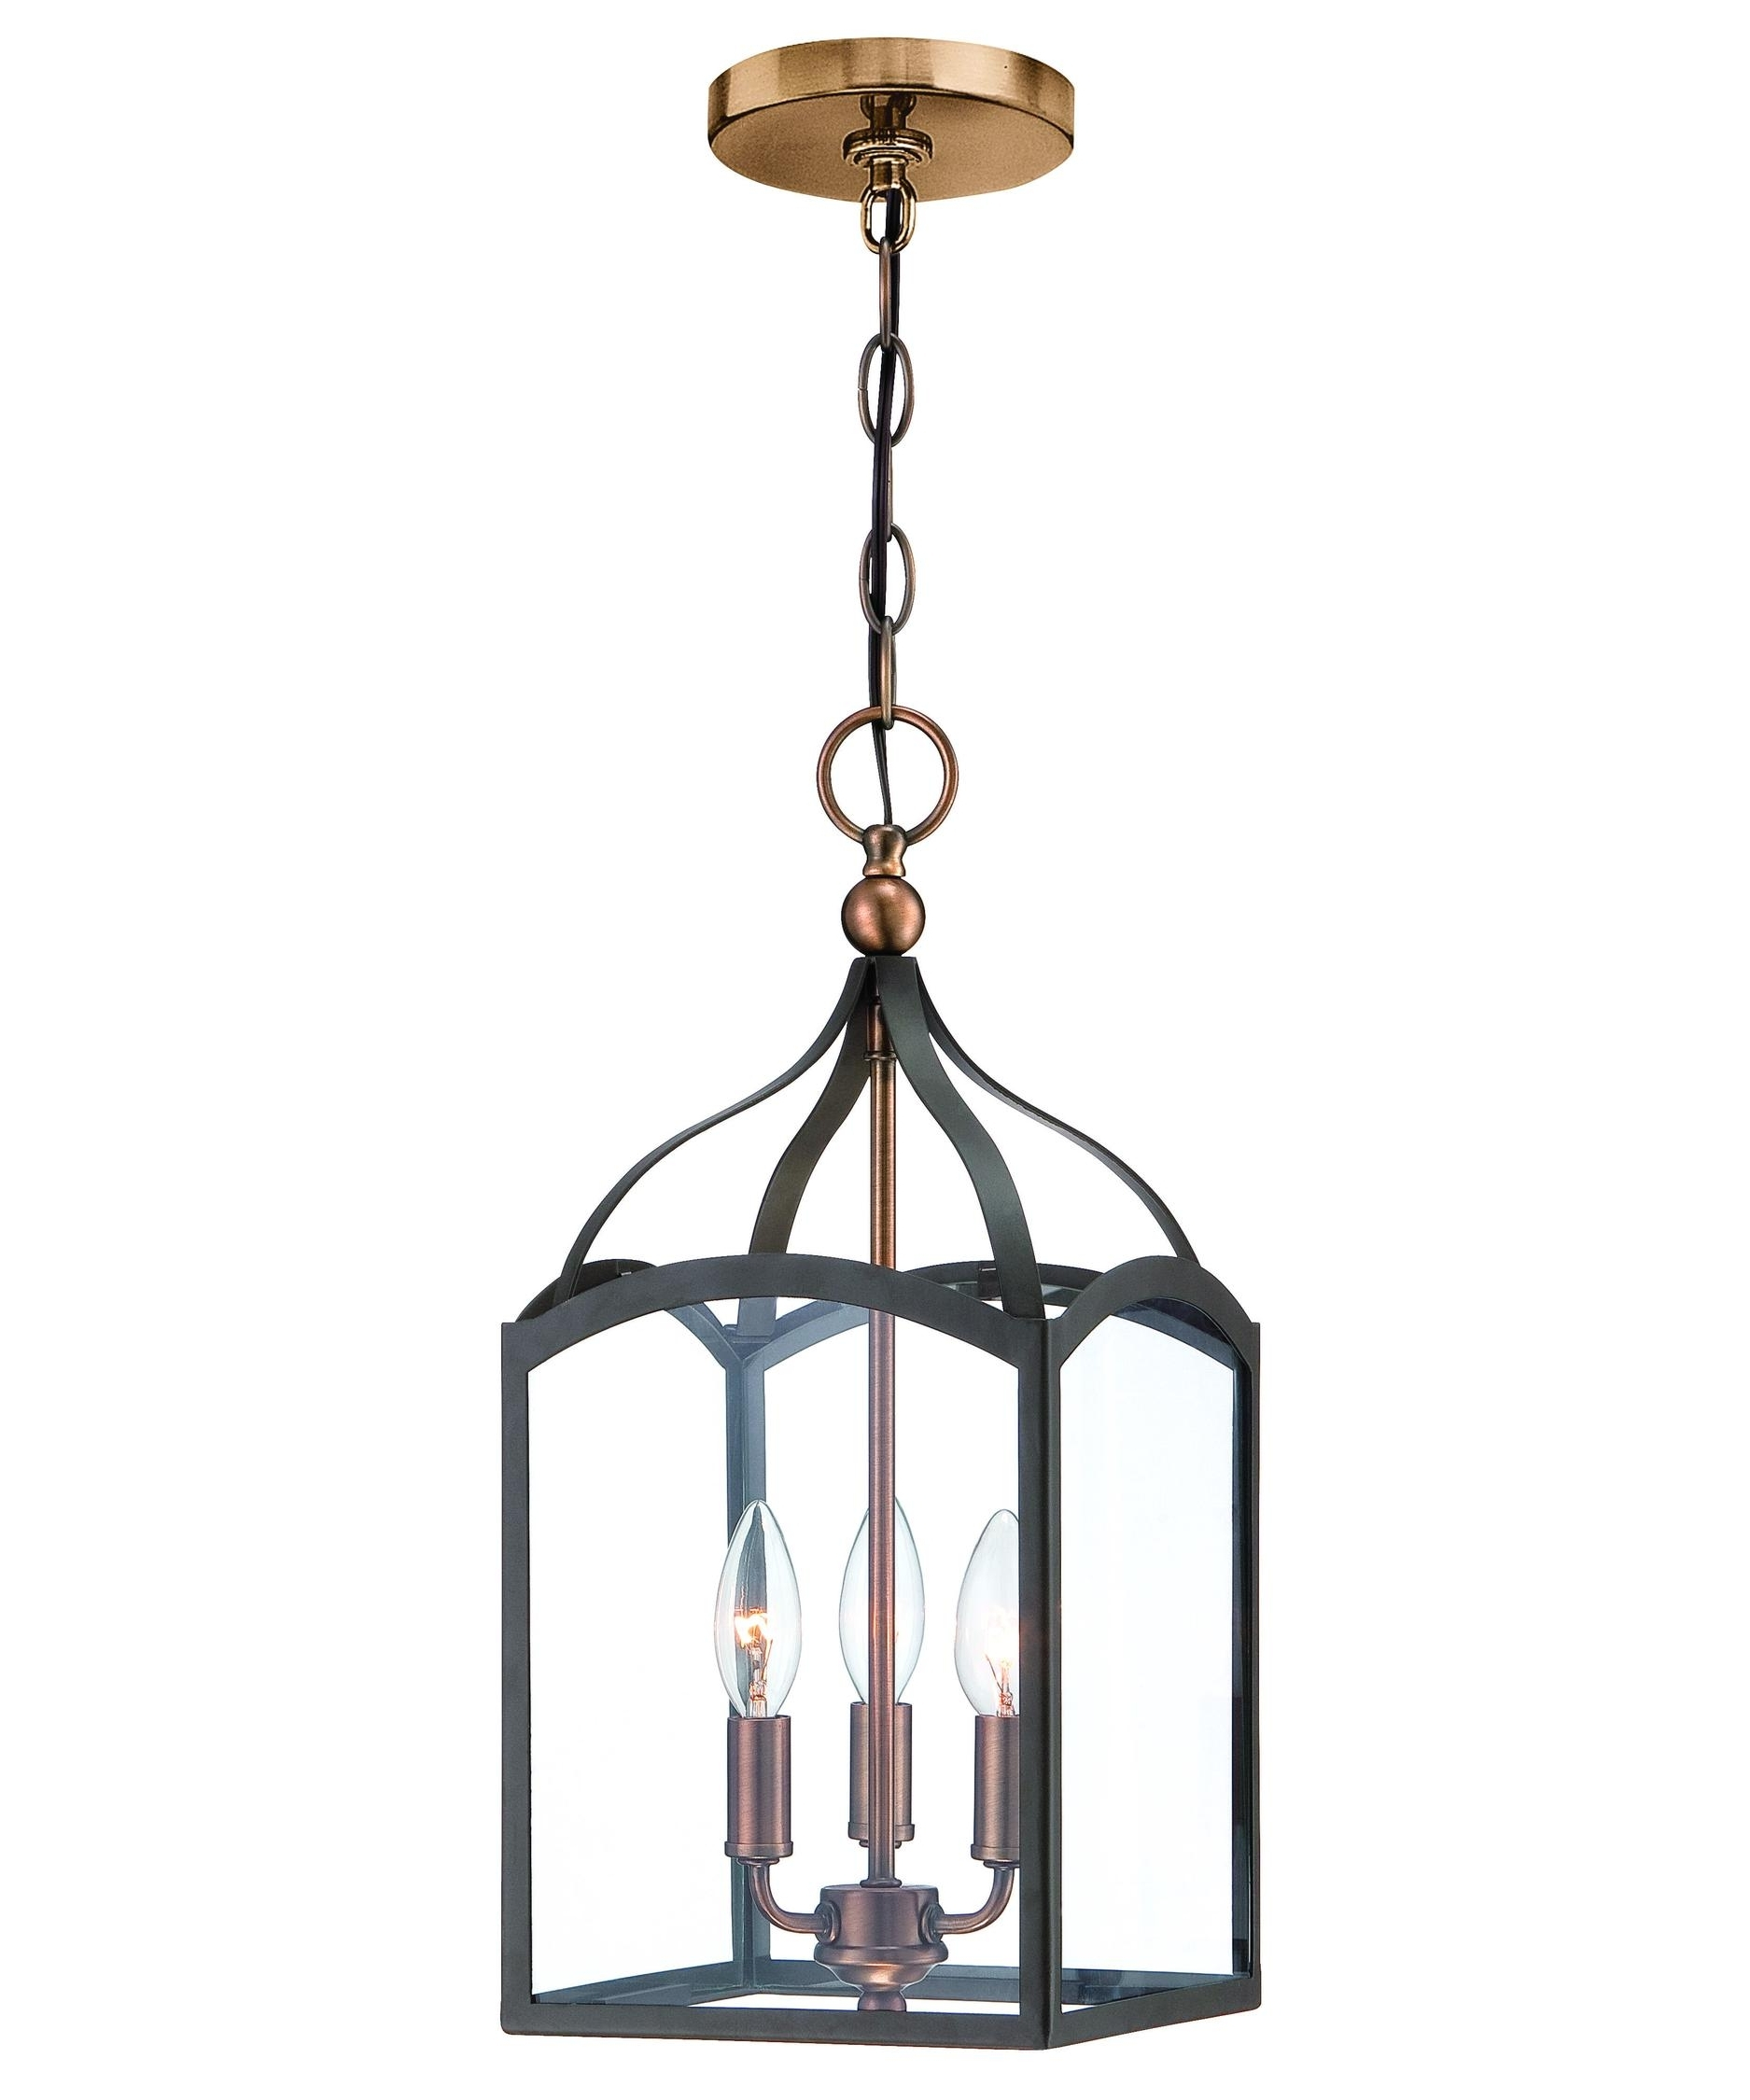 Contemporary Hinkley Lighting Within Trendy Hinkley Lighting 3413 Clarendon 8 Inch Wide Foyer Pendant (View 10 of 20)